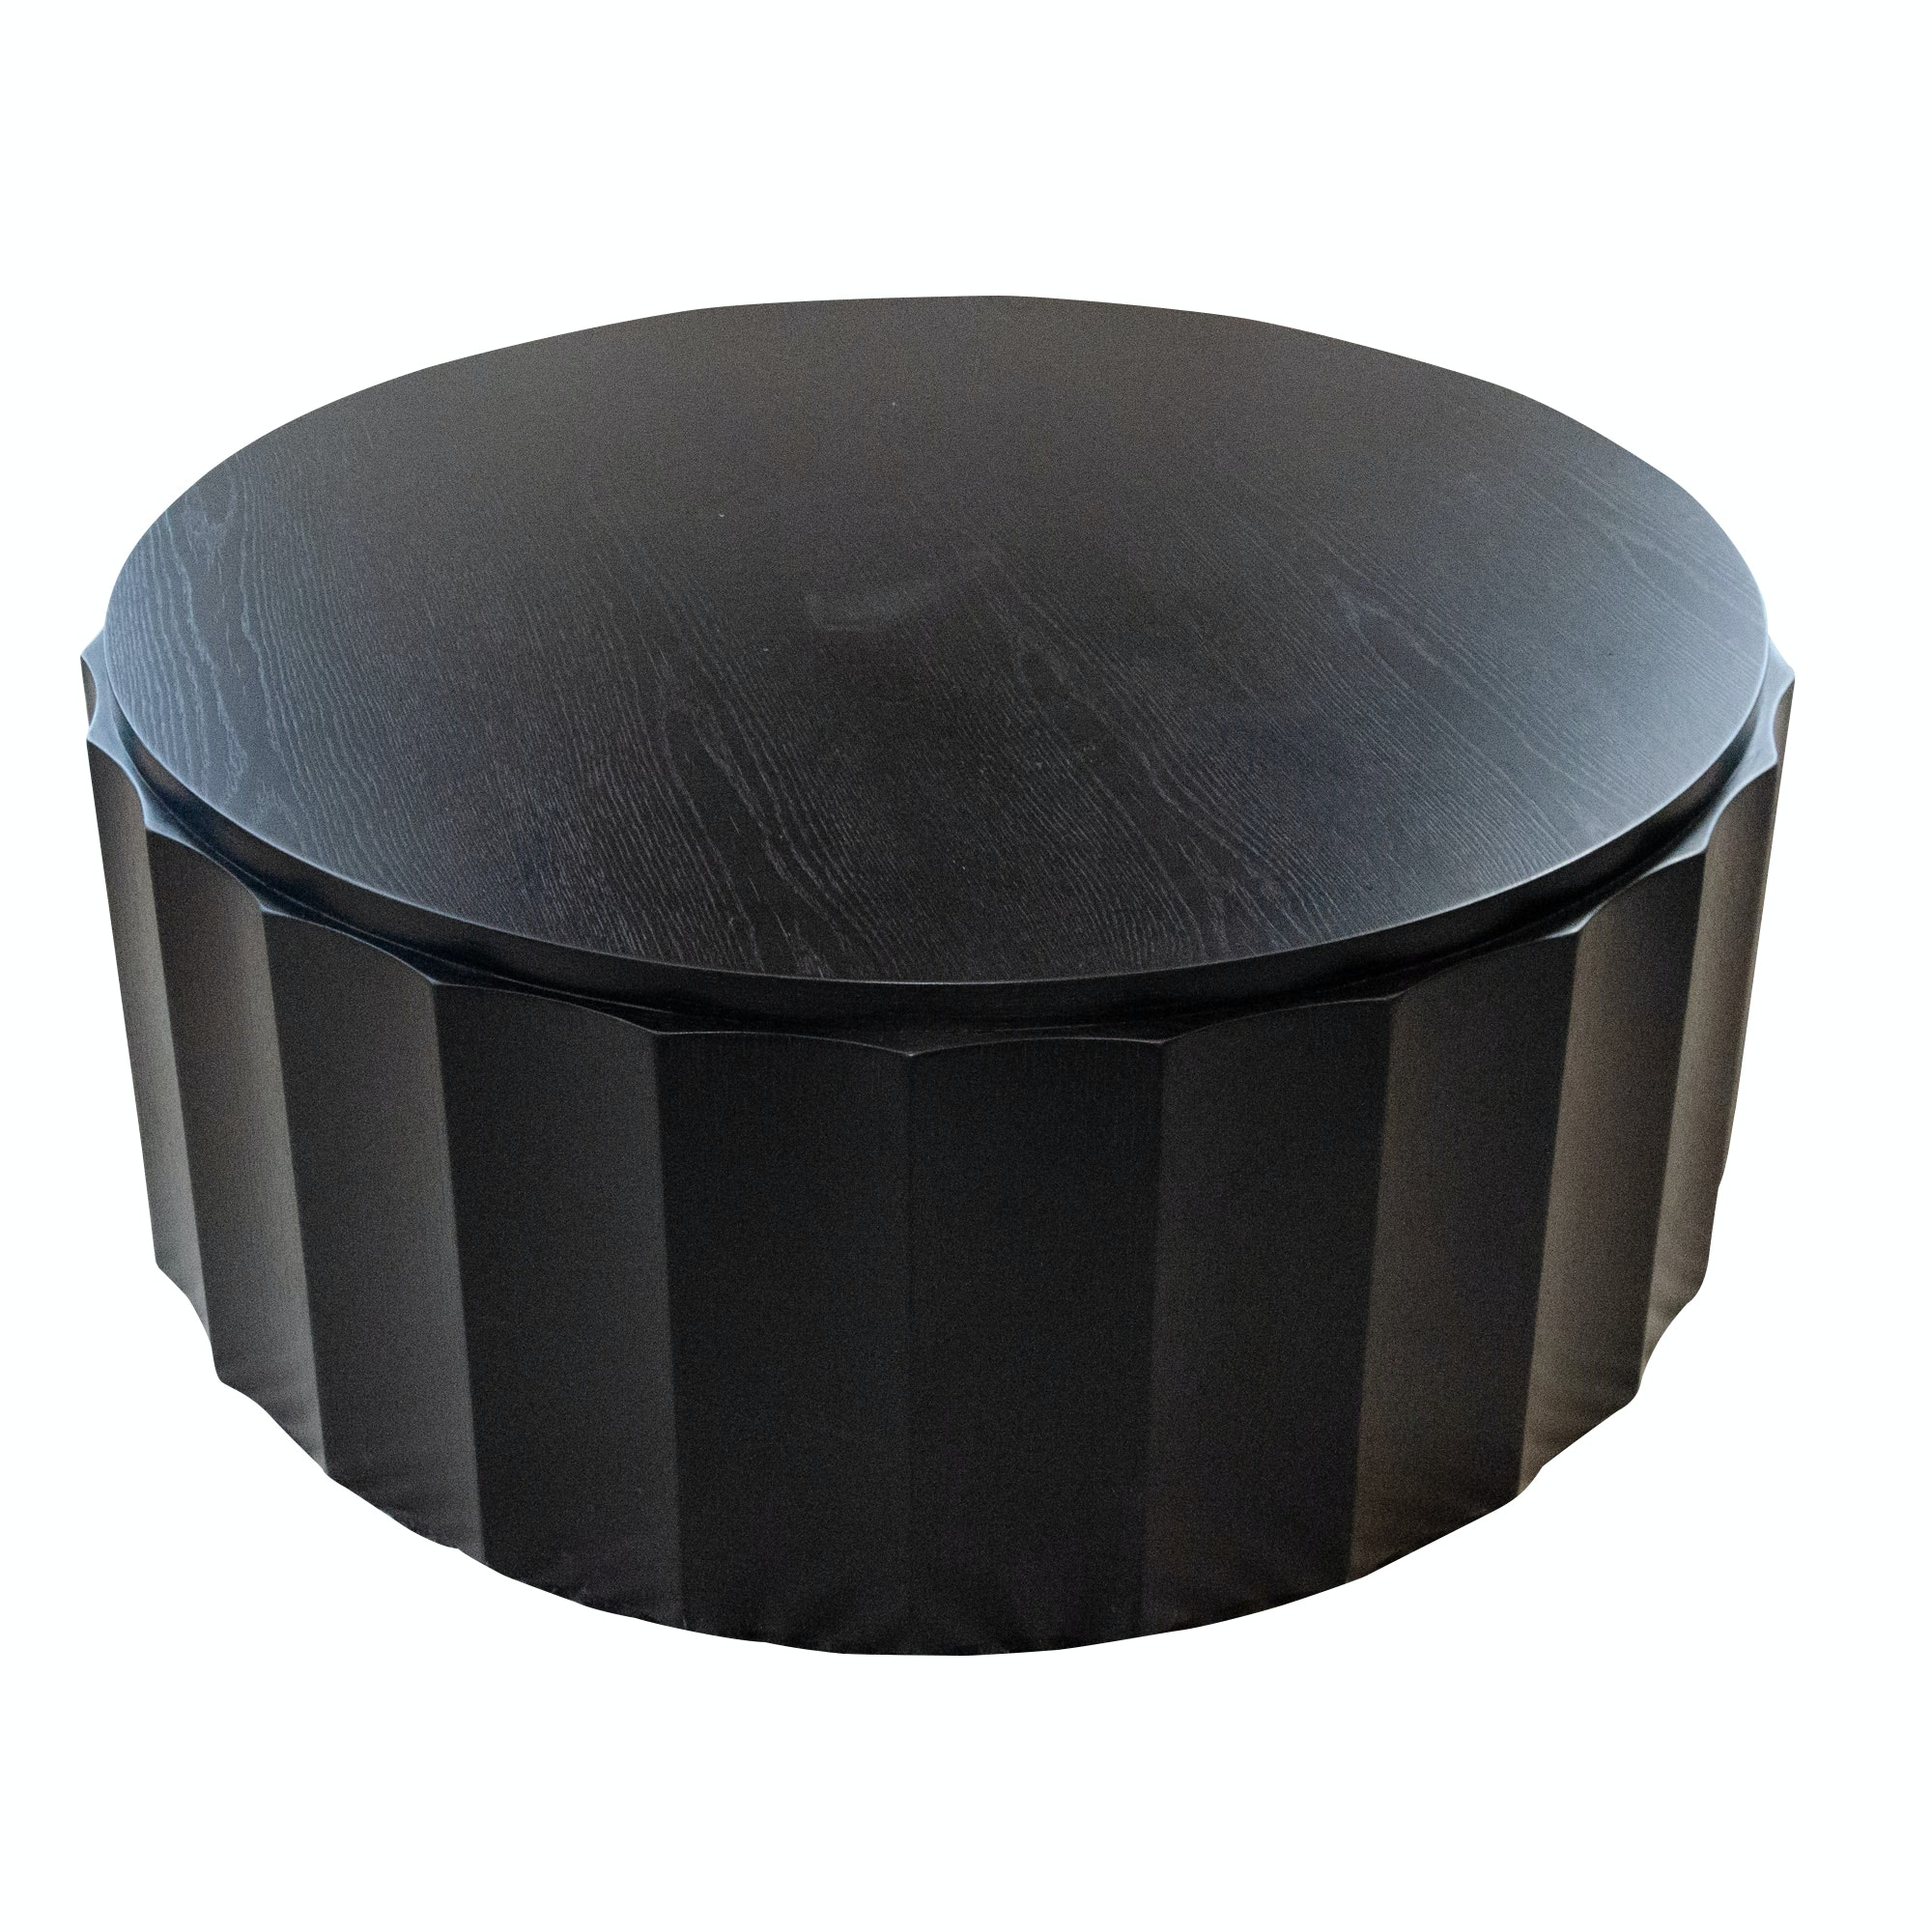 Modern Round Espresso-Finish Wooden Coffee Table